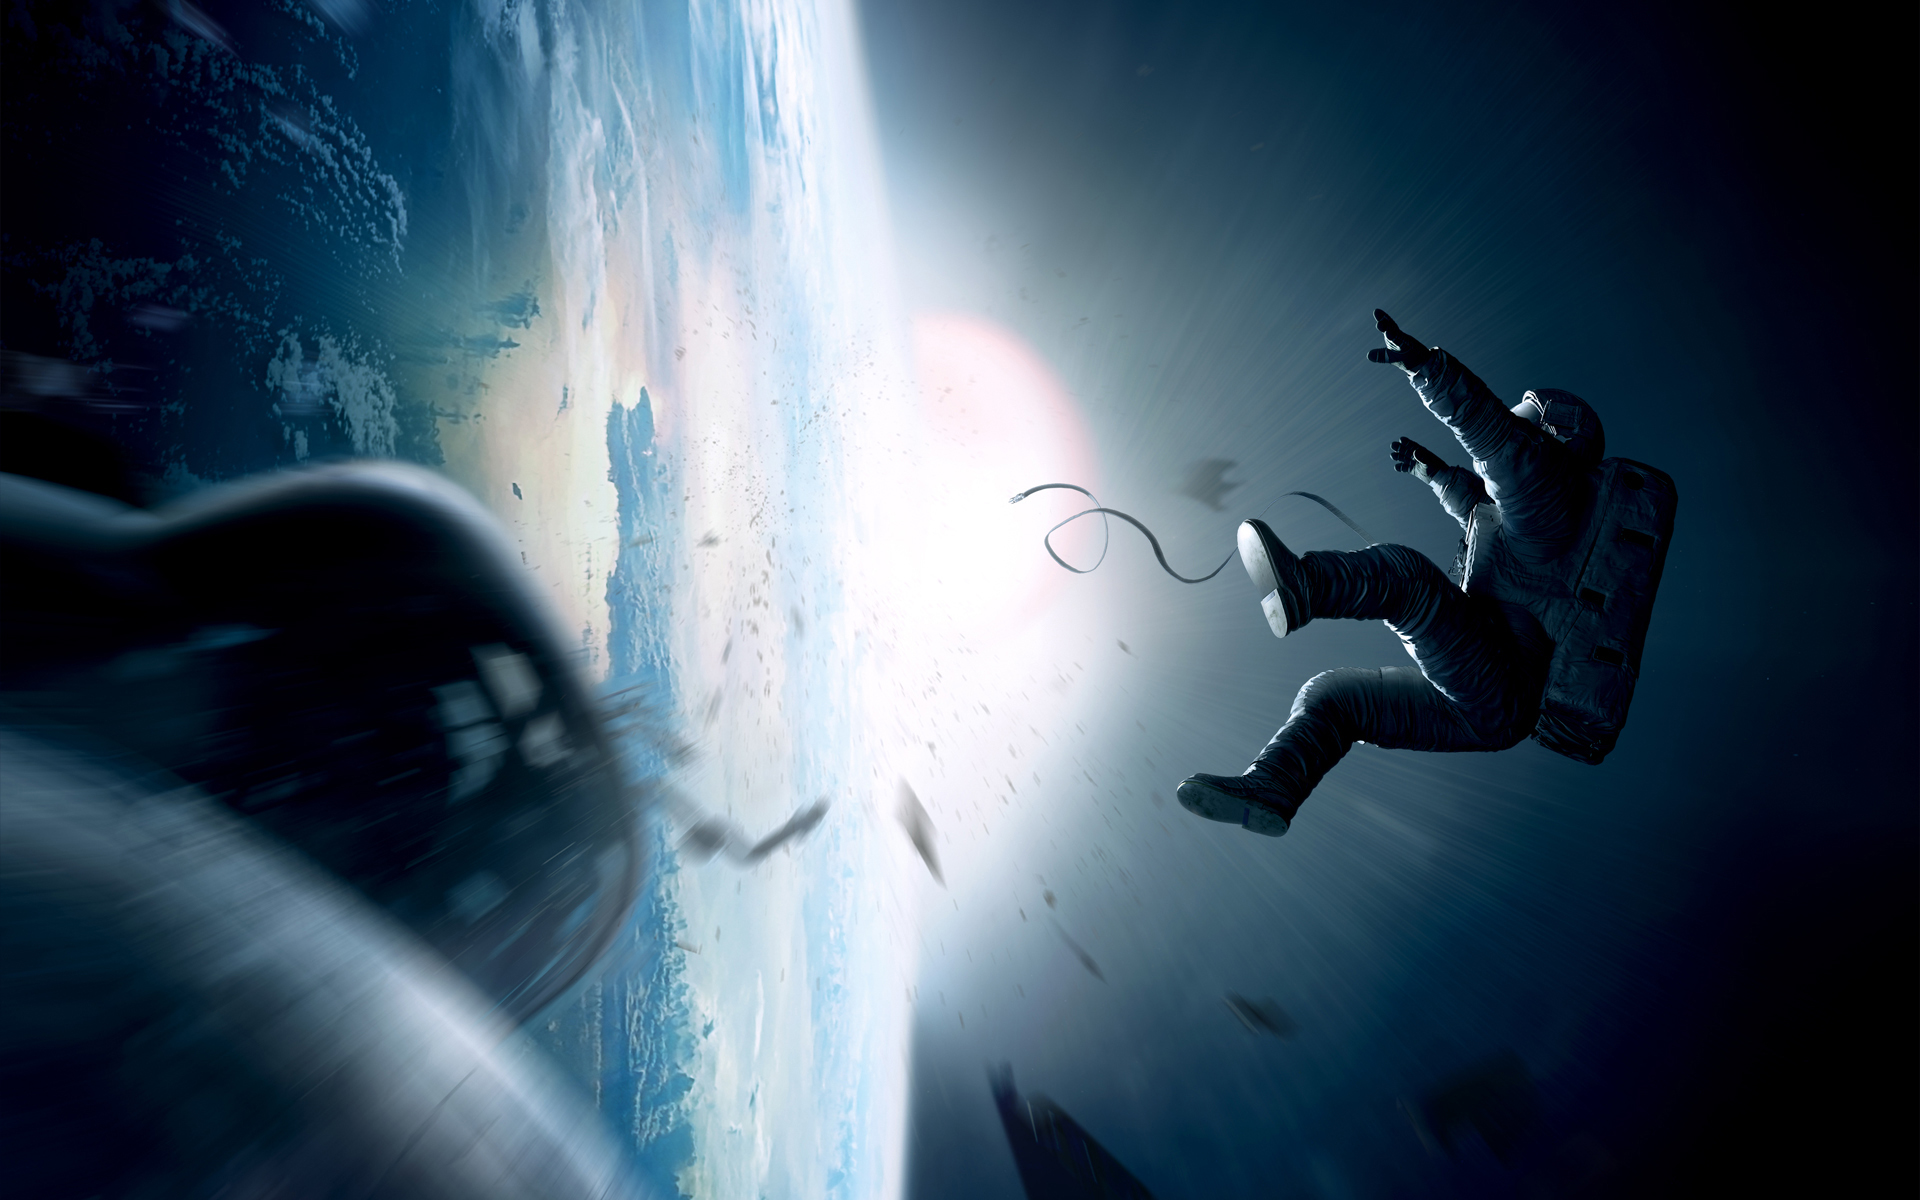 gravity movie amazing hd wallpapers (high quality) - all hd wallpapers